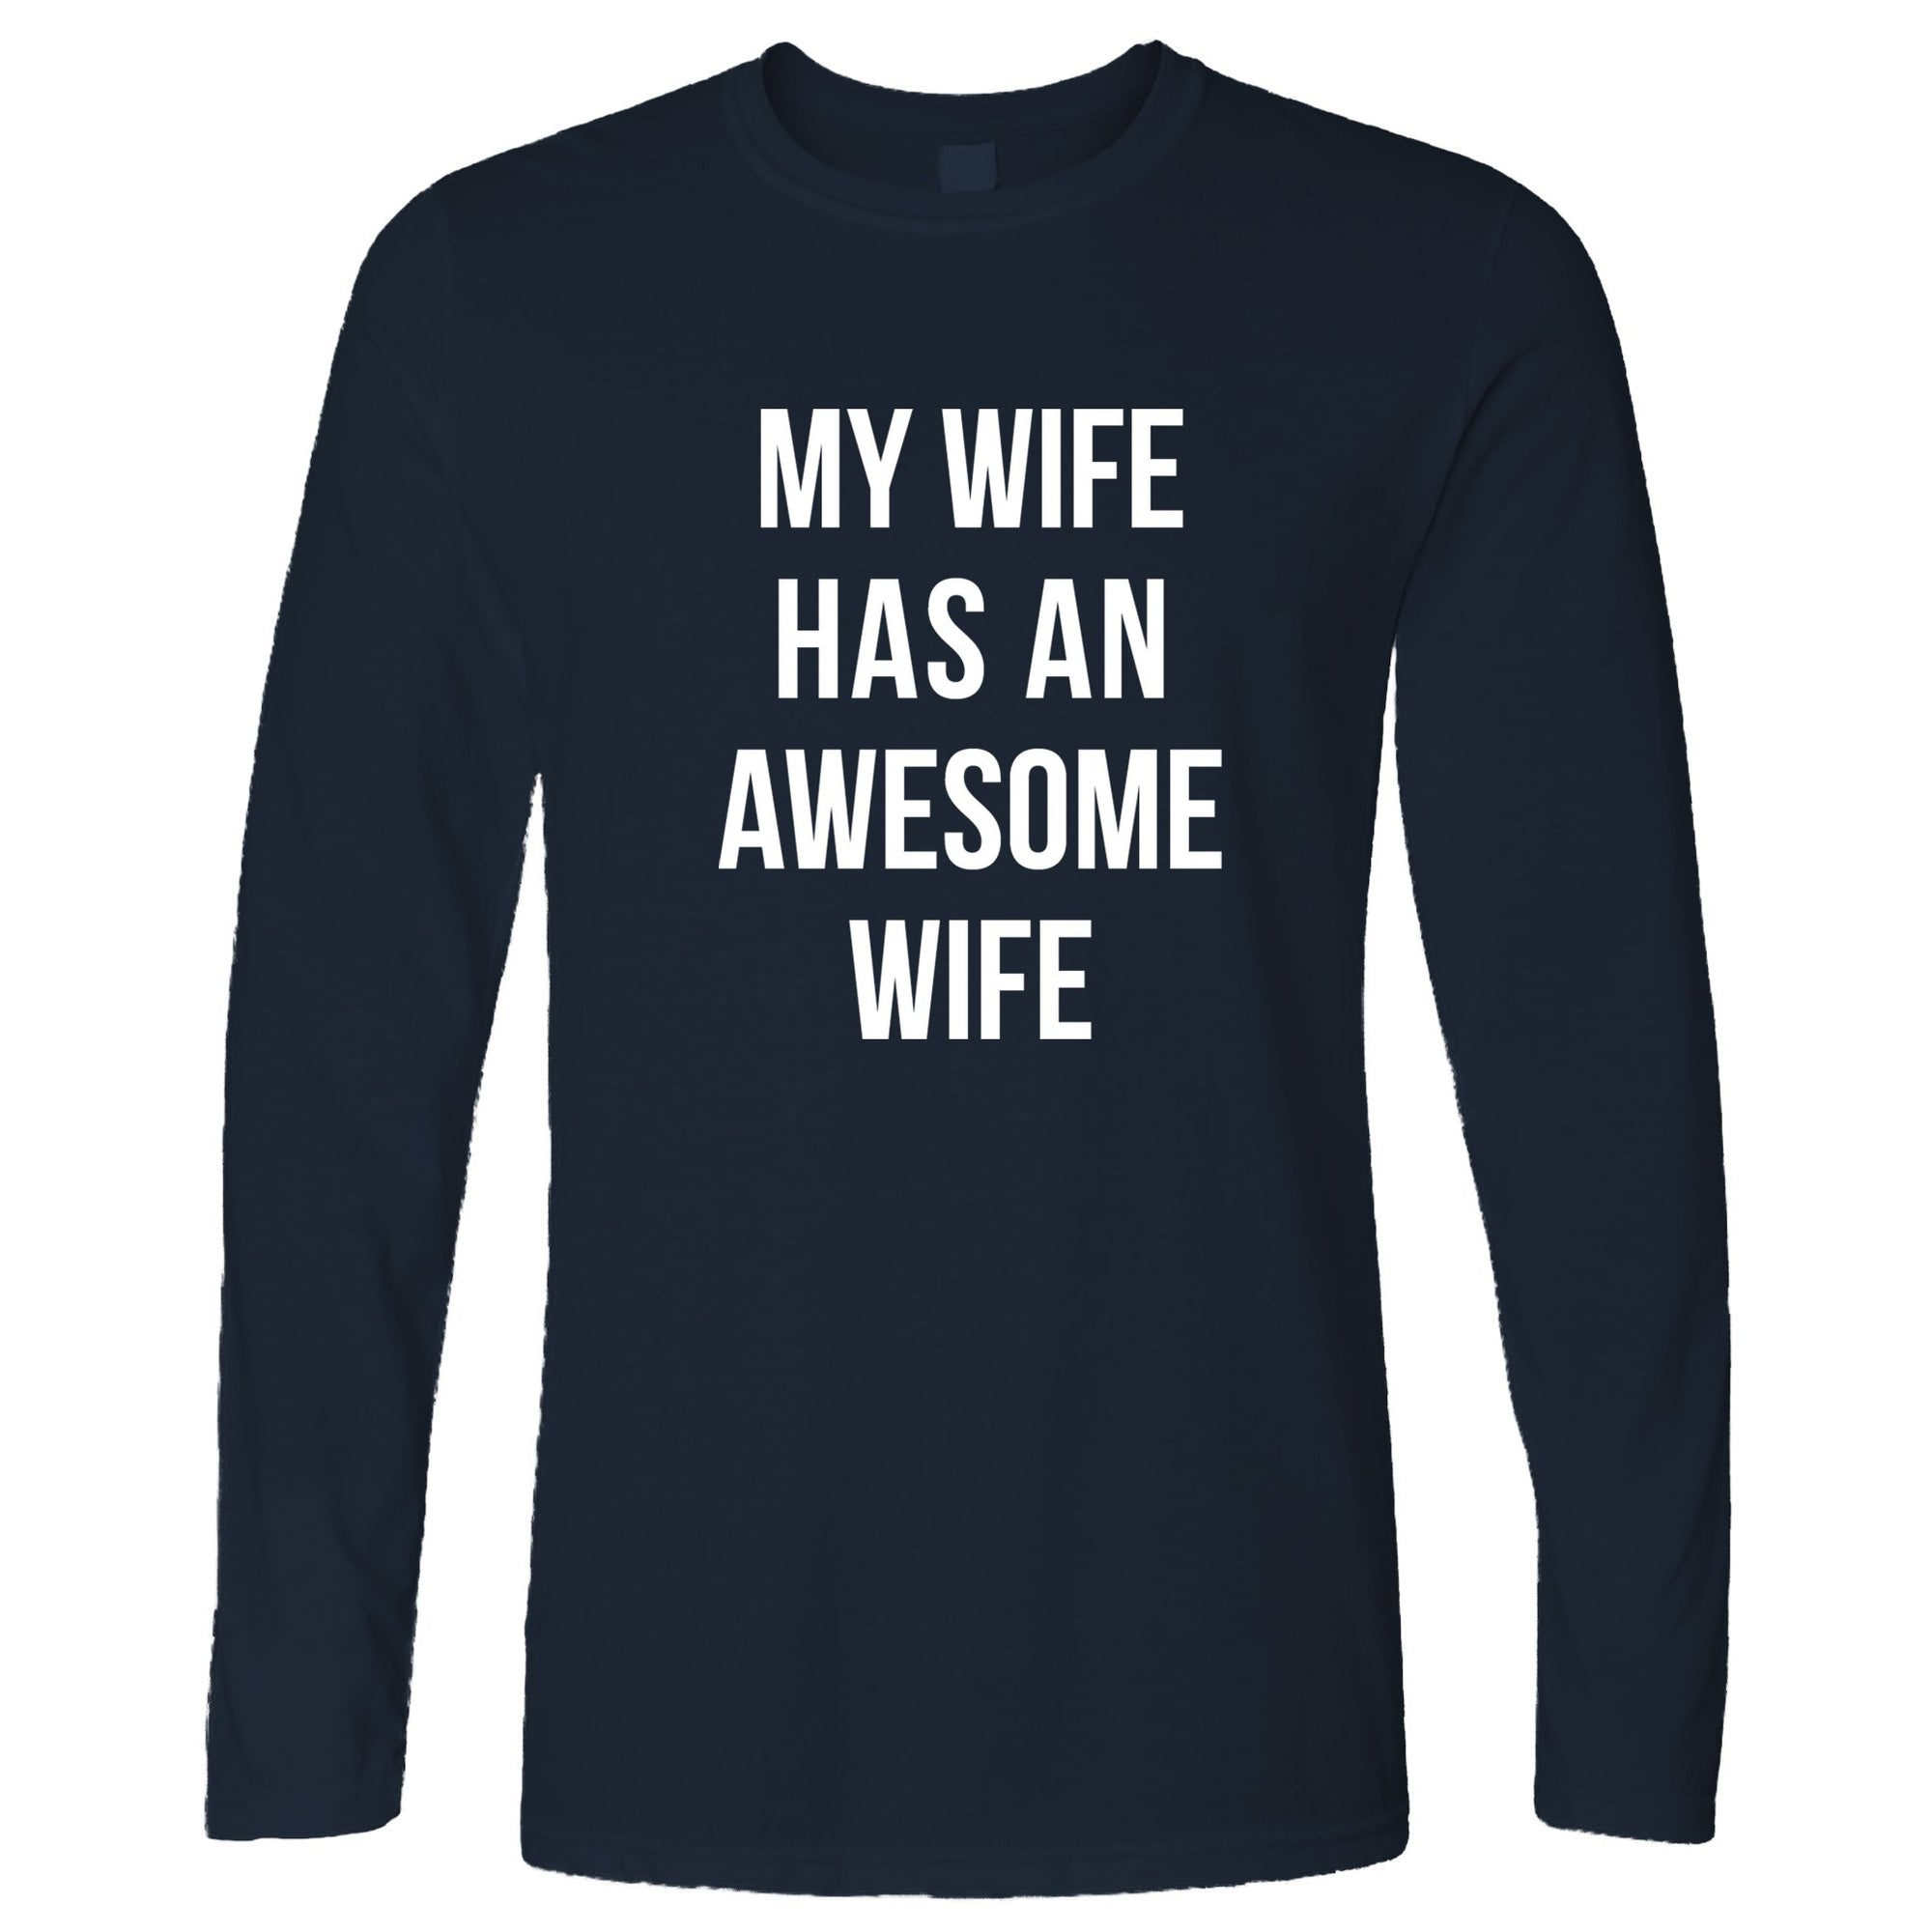 Joke Couples Long Sleeve My Wife Has An Awesome Wife T-Shirt